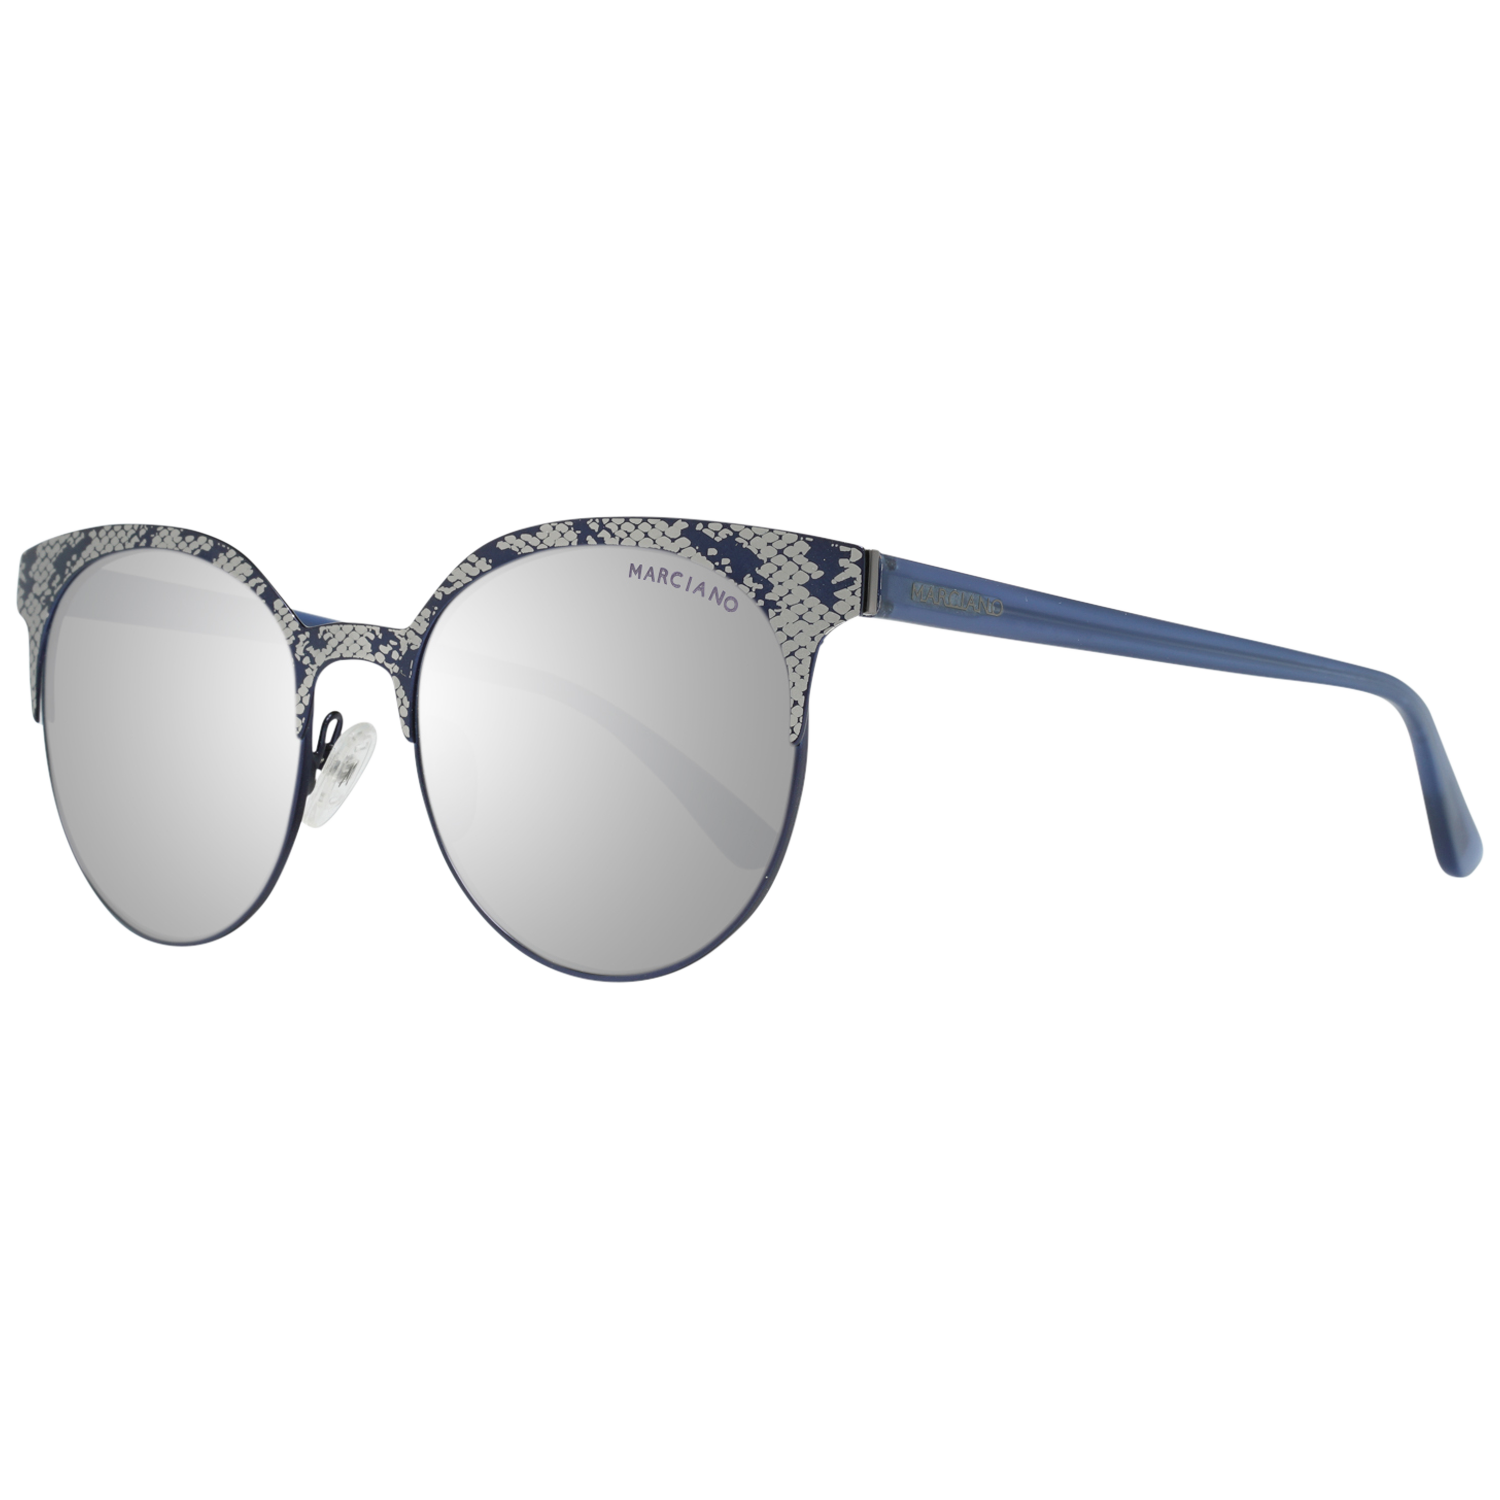 Guess by Marciano Sunglasses GM0773 91C 52 Blue